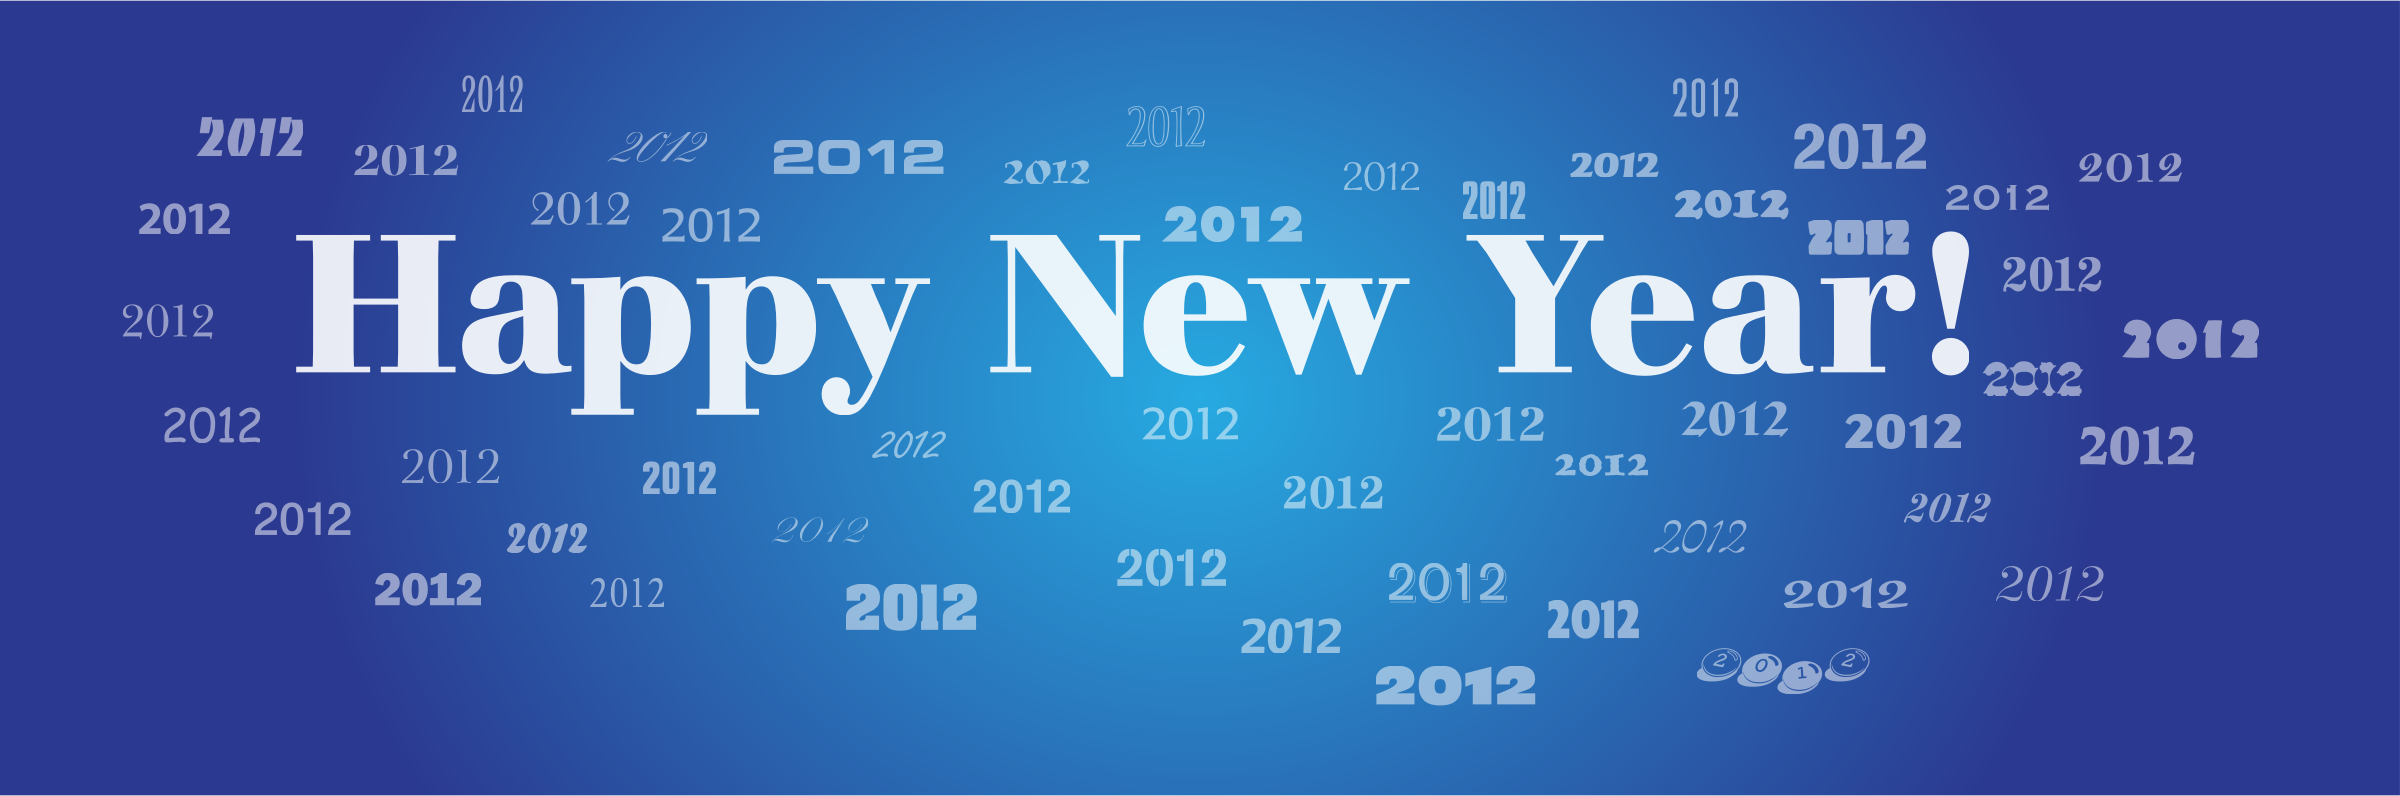 Happy New Year 2012 by jhnri4